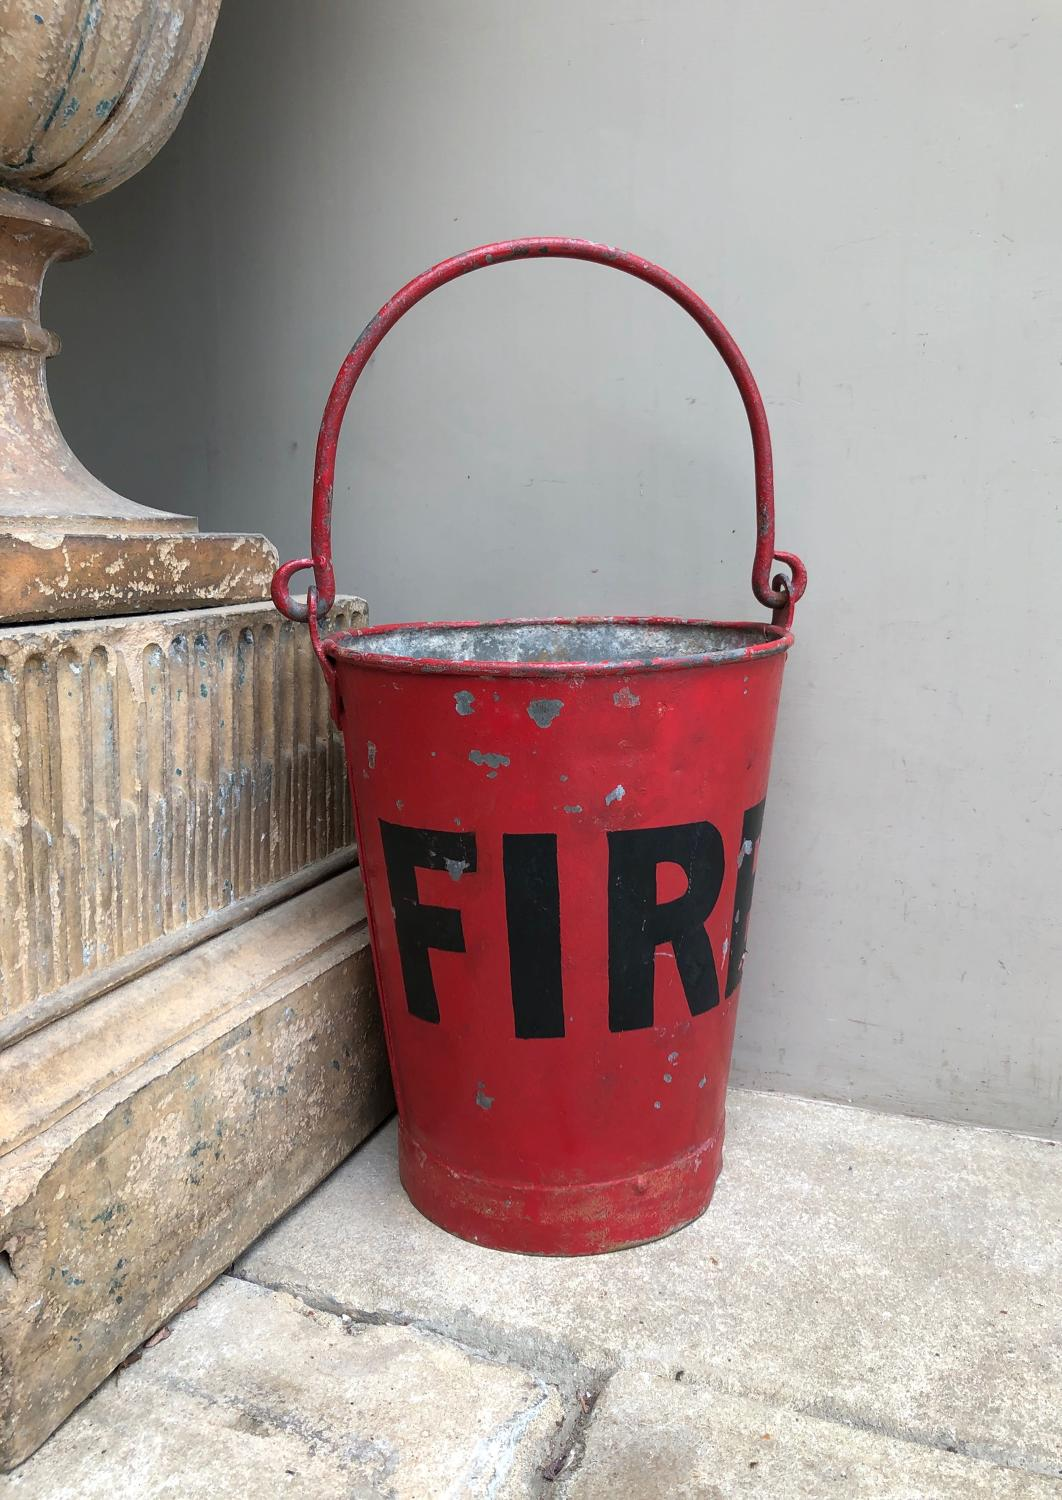 Early 20thC Merryweather London Fire Bucket - Great Original Paint